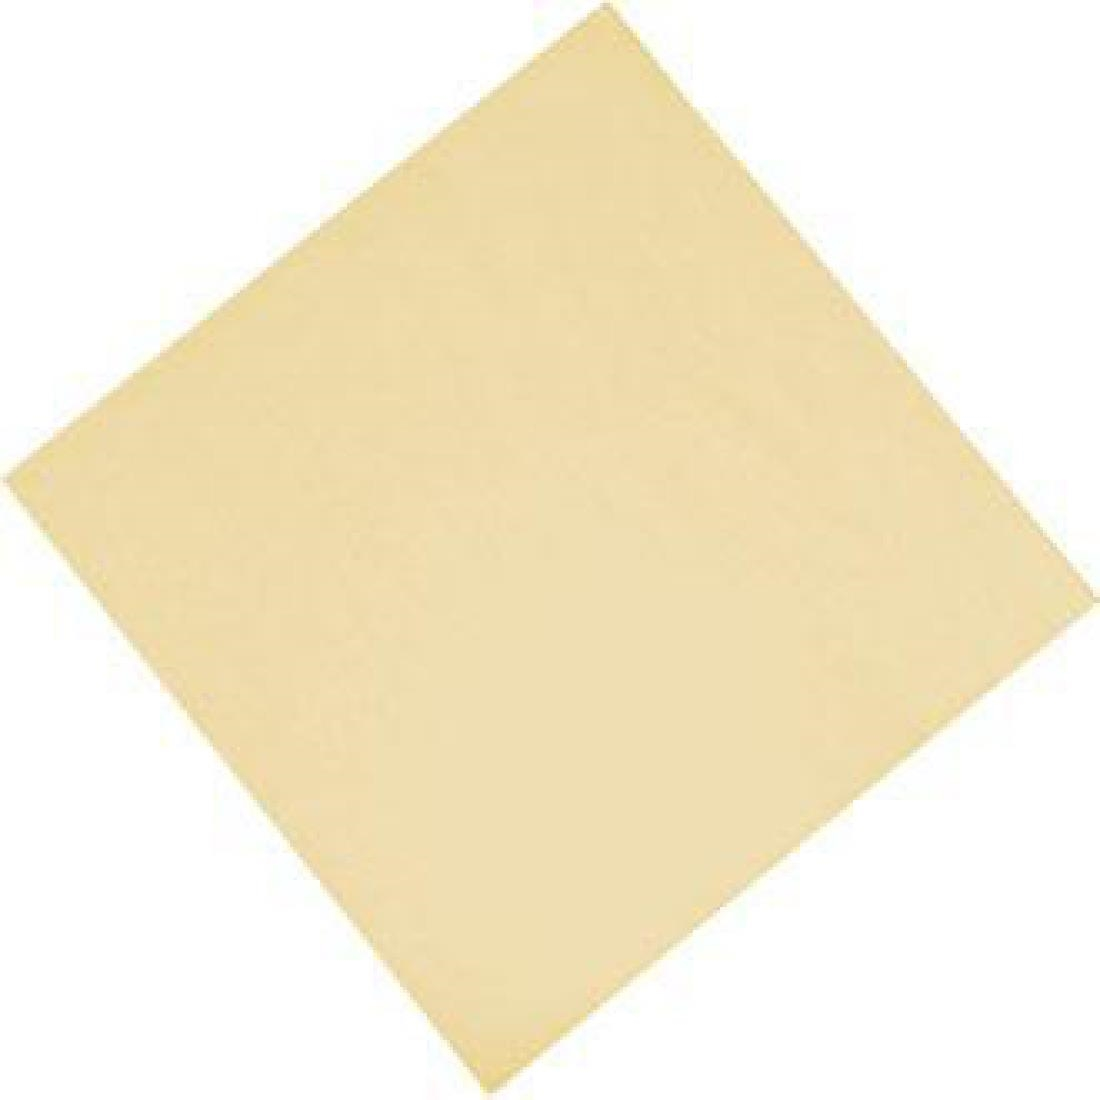 Image of Fasana Dinner Napkins Cream 400mm (Pack of 1000) Pack of 1000